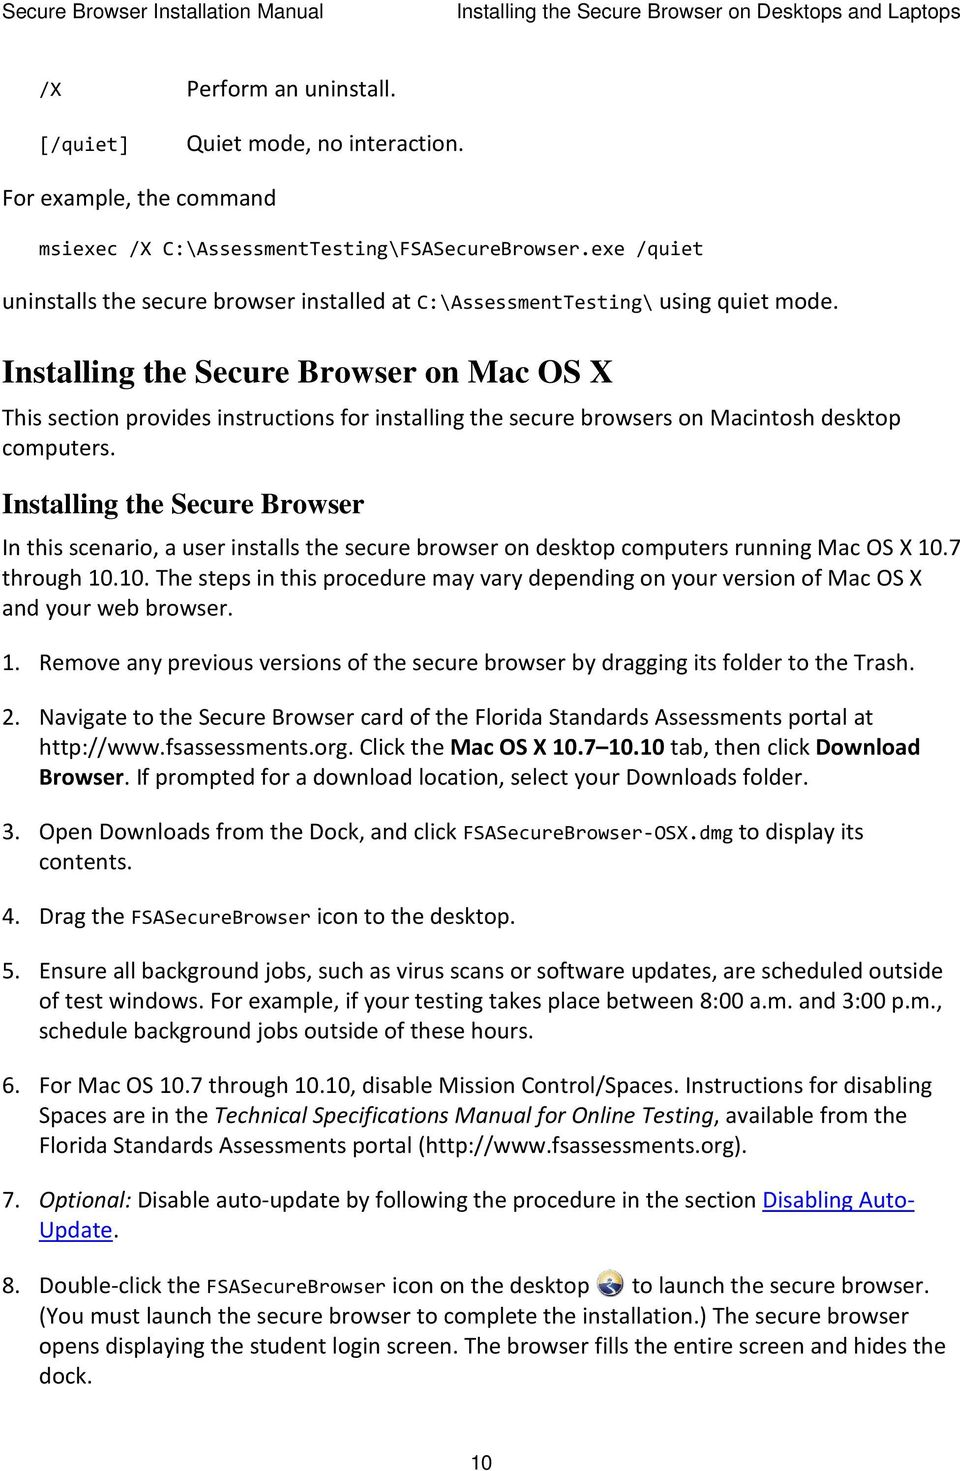 Installing the Secure Browser on Mac OS X This section provides instructions for installing the secure browsers on Macintosh desktop computers.